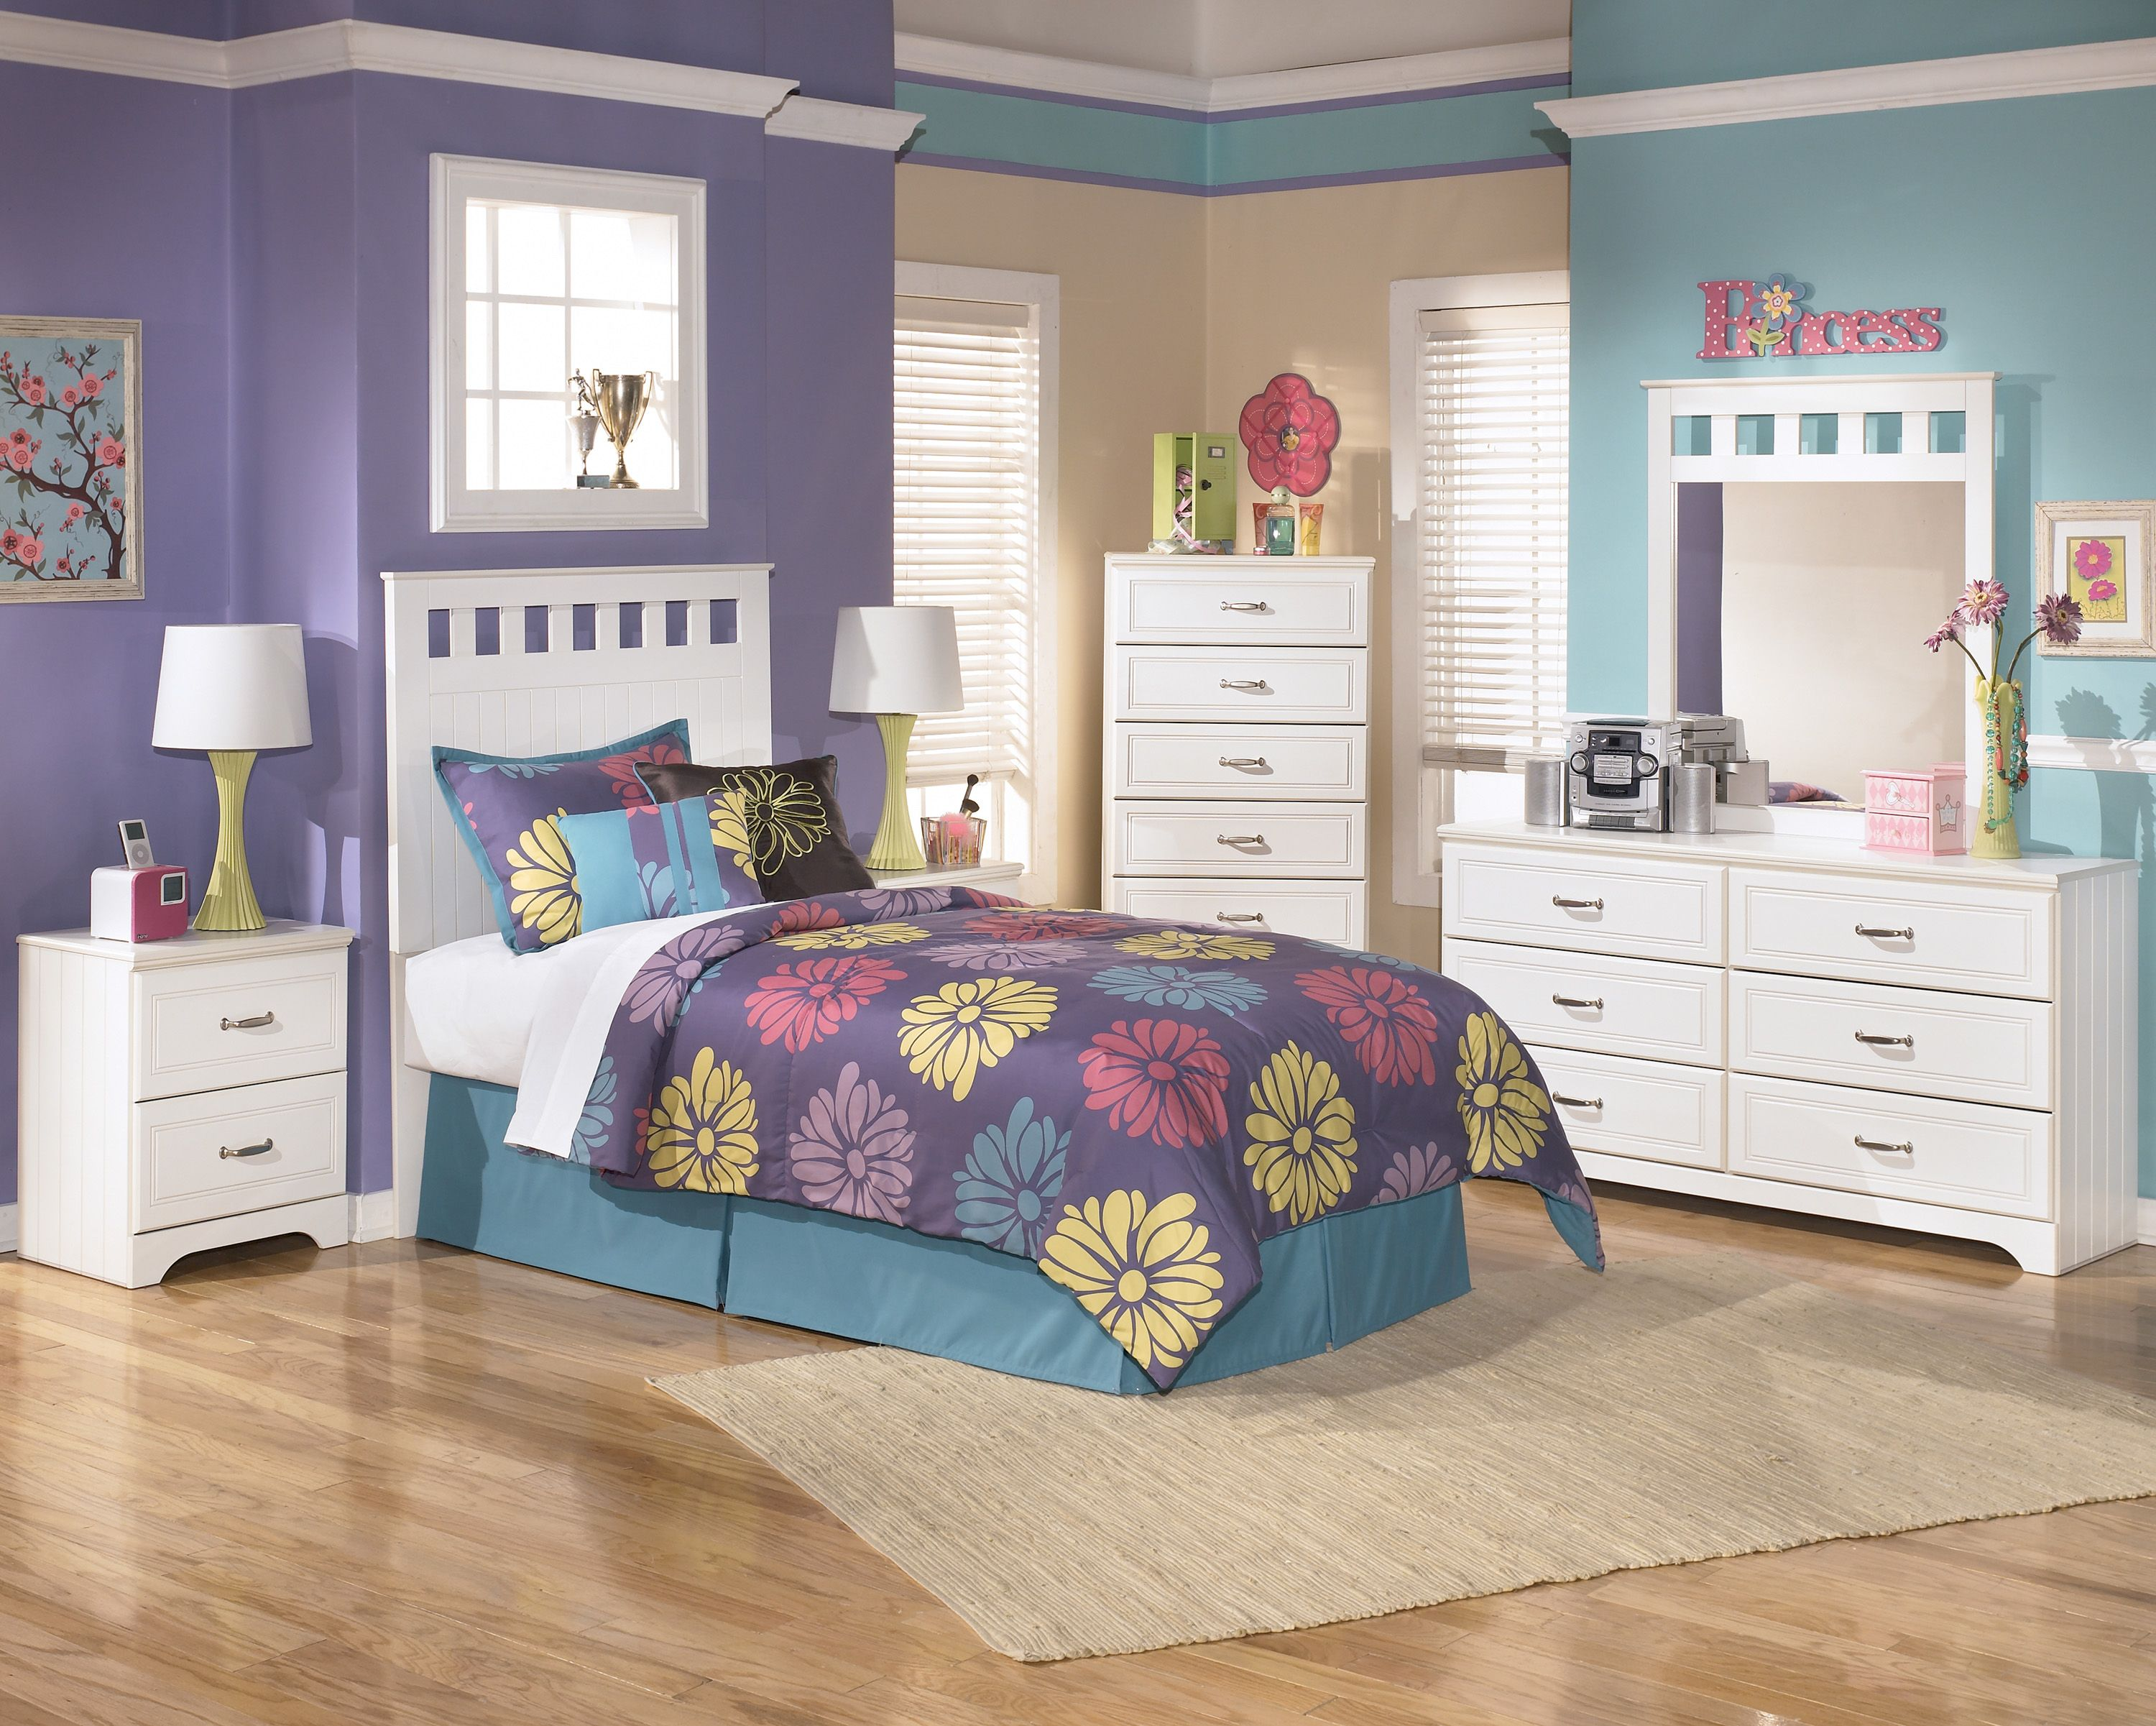 Cool Kids Furniture Great Kids Bedroom Furniture Kid Bedroom Furniture Sets/